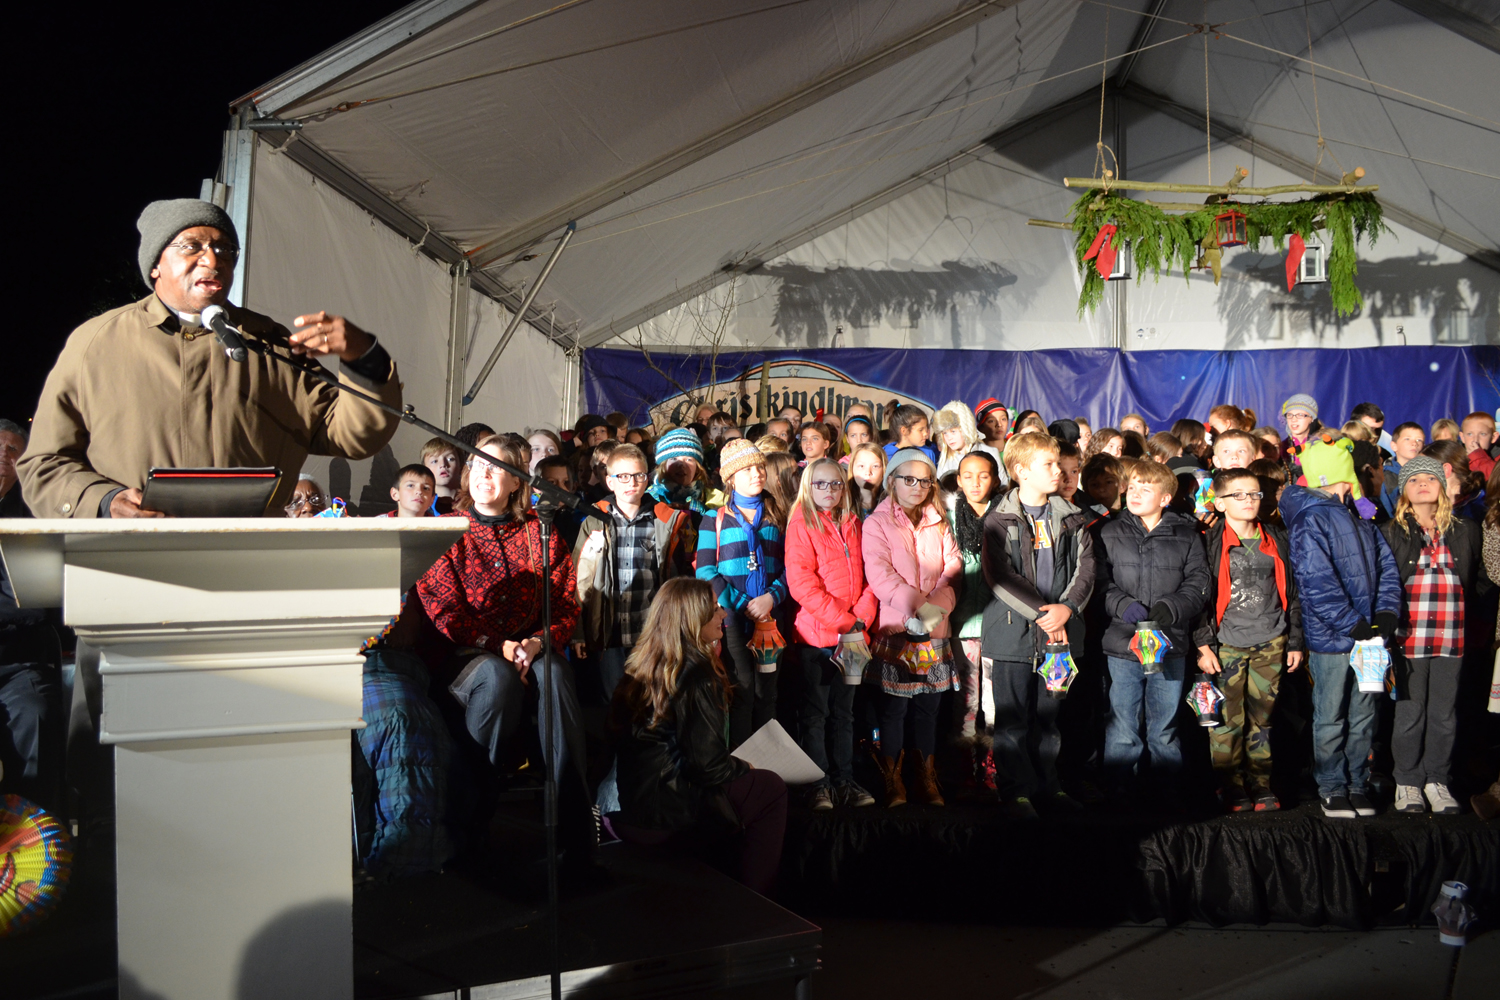 st-martins-lantern-parade-pastor-davis-and-childrens-choir.jpg